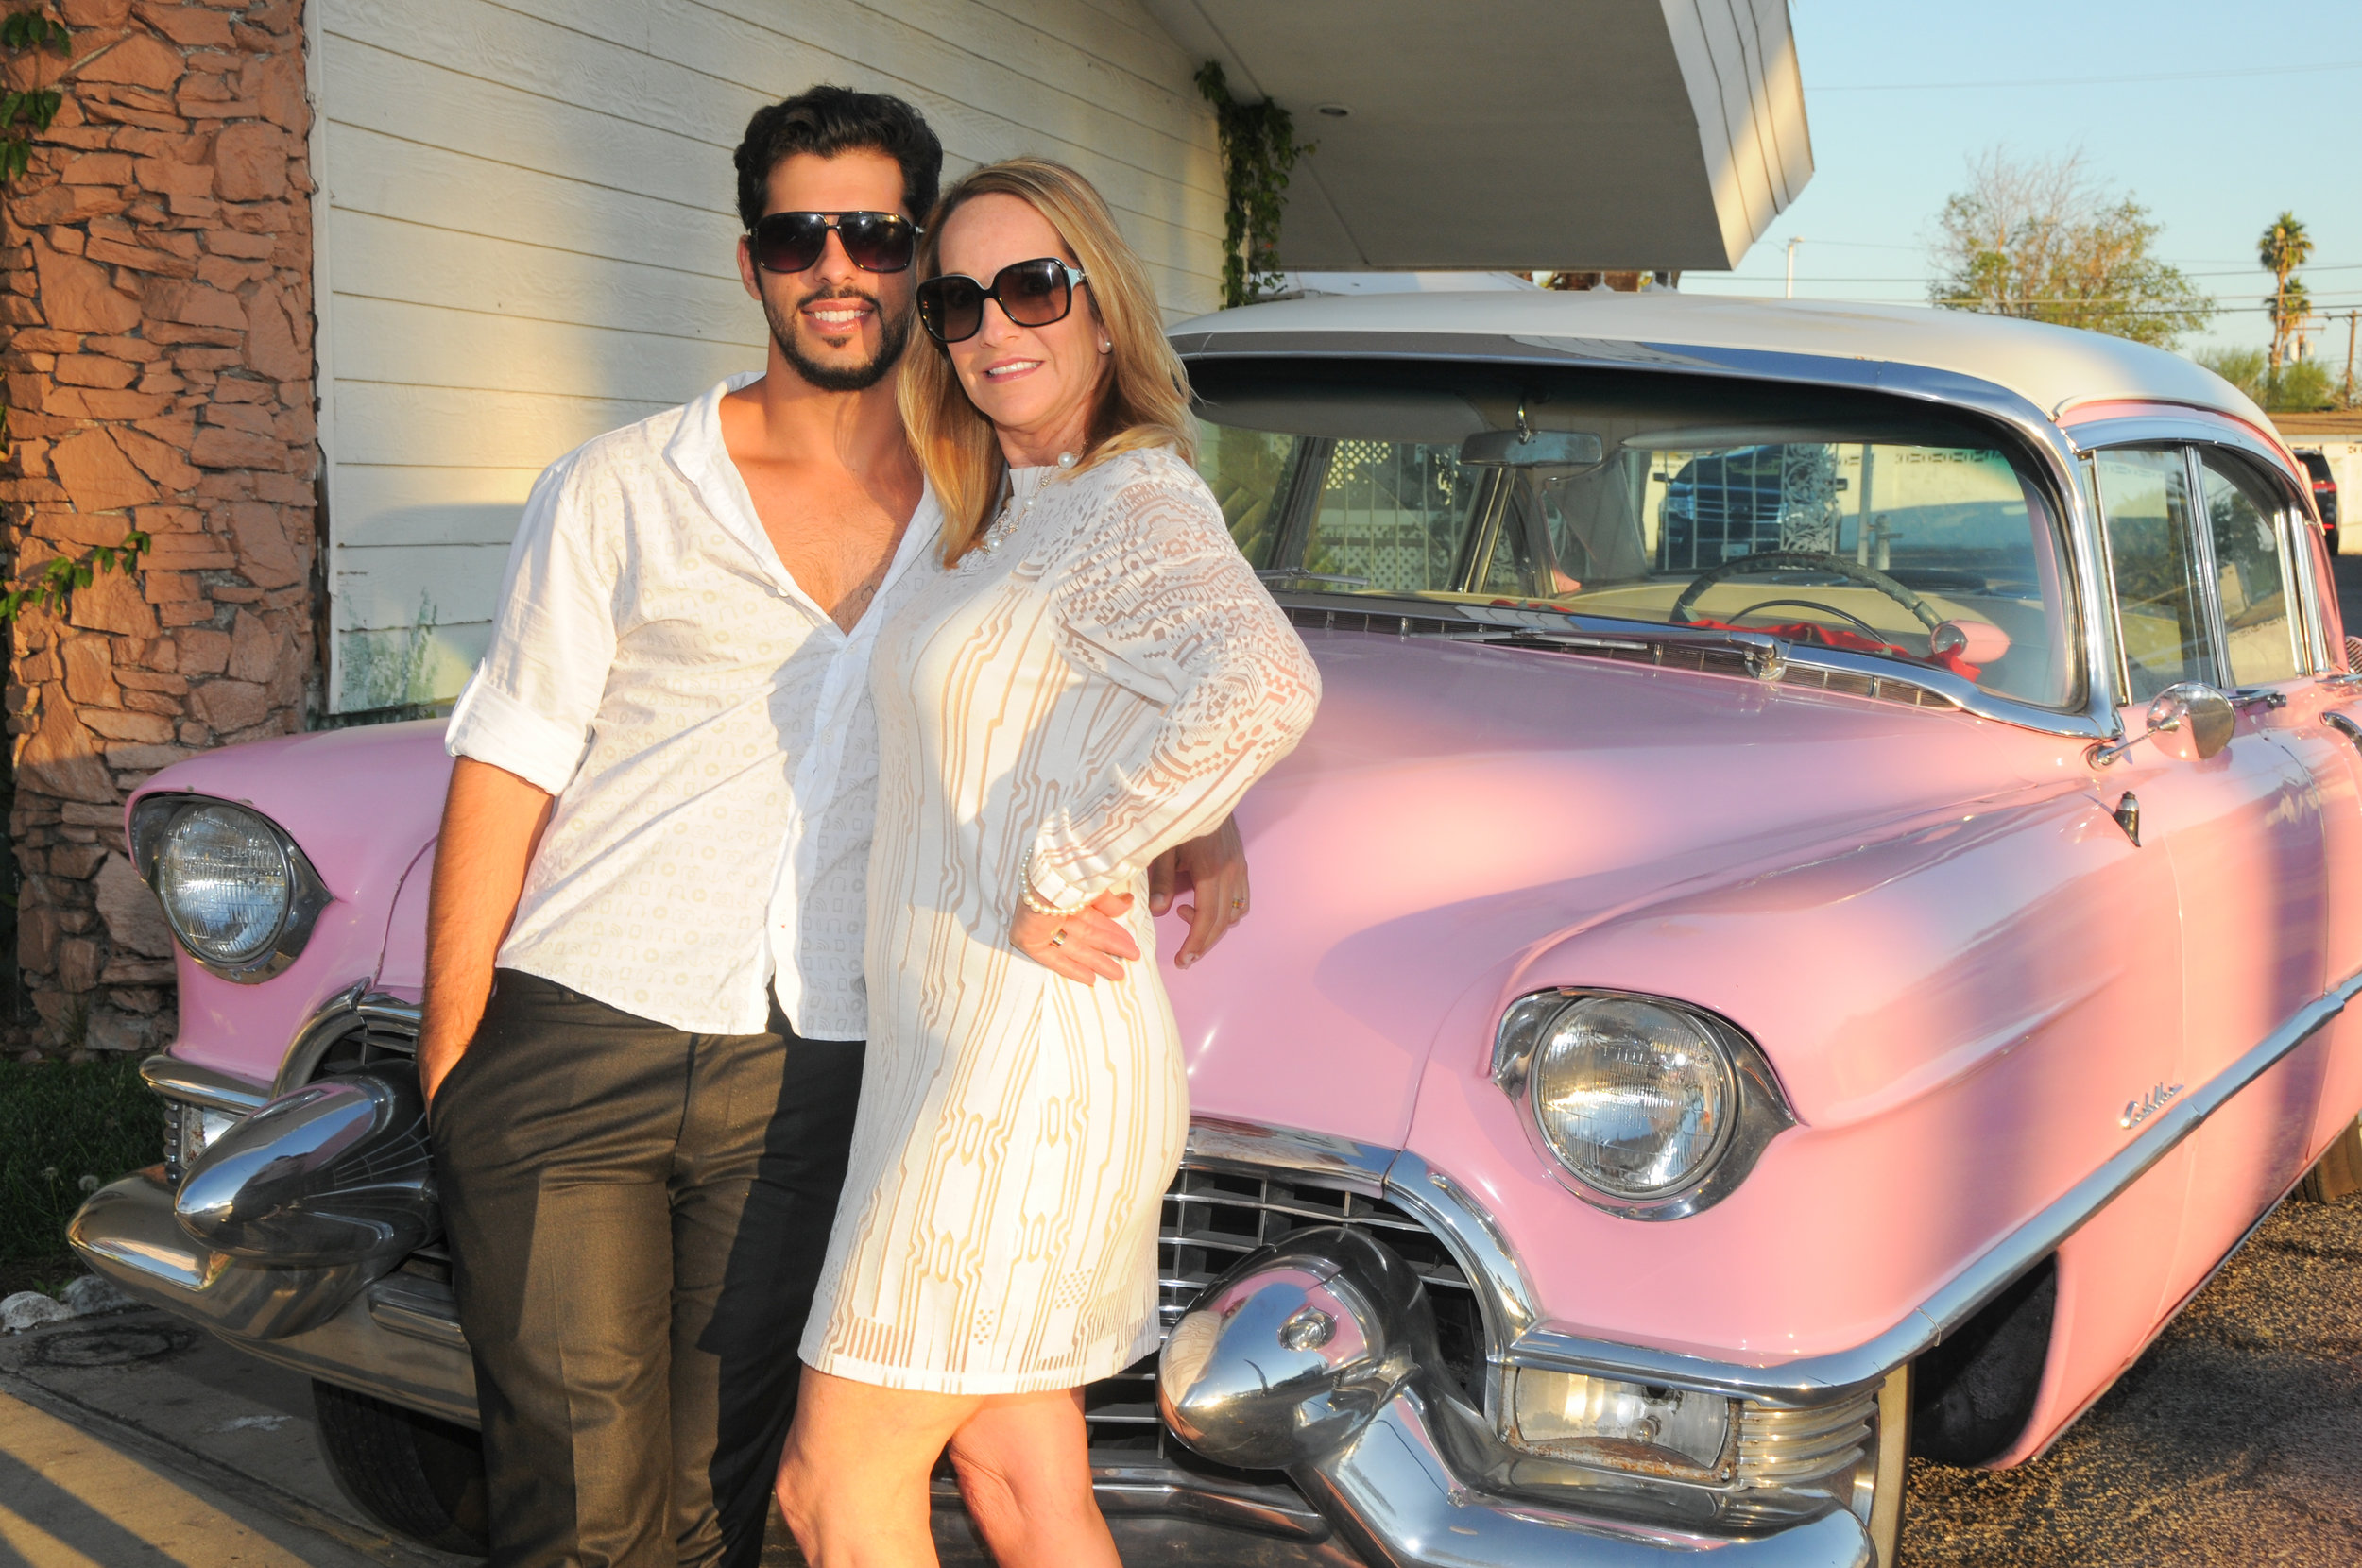 Couple posing in front of Pink Caddy